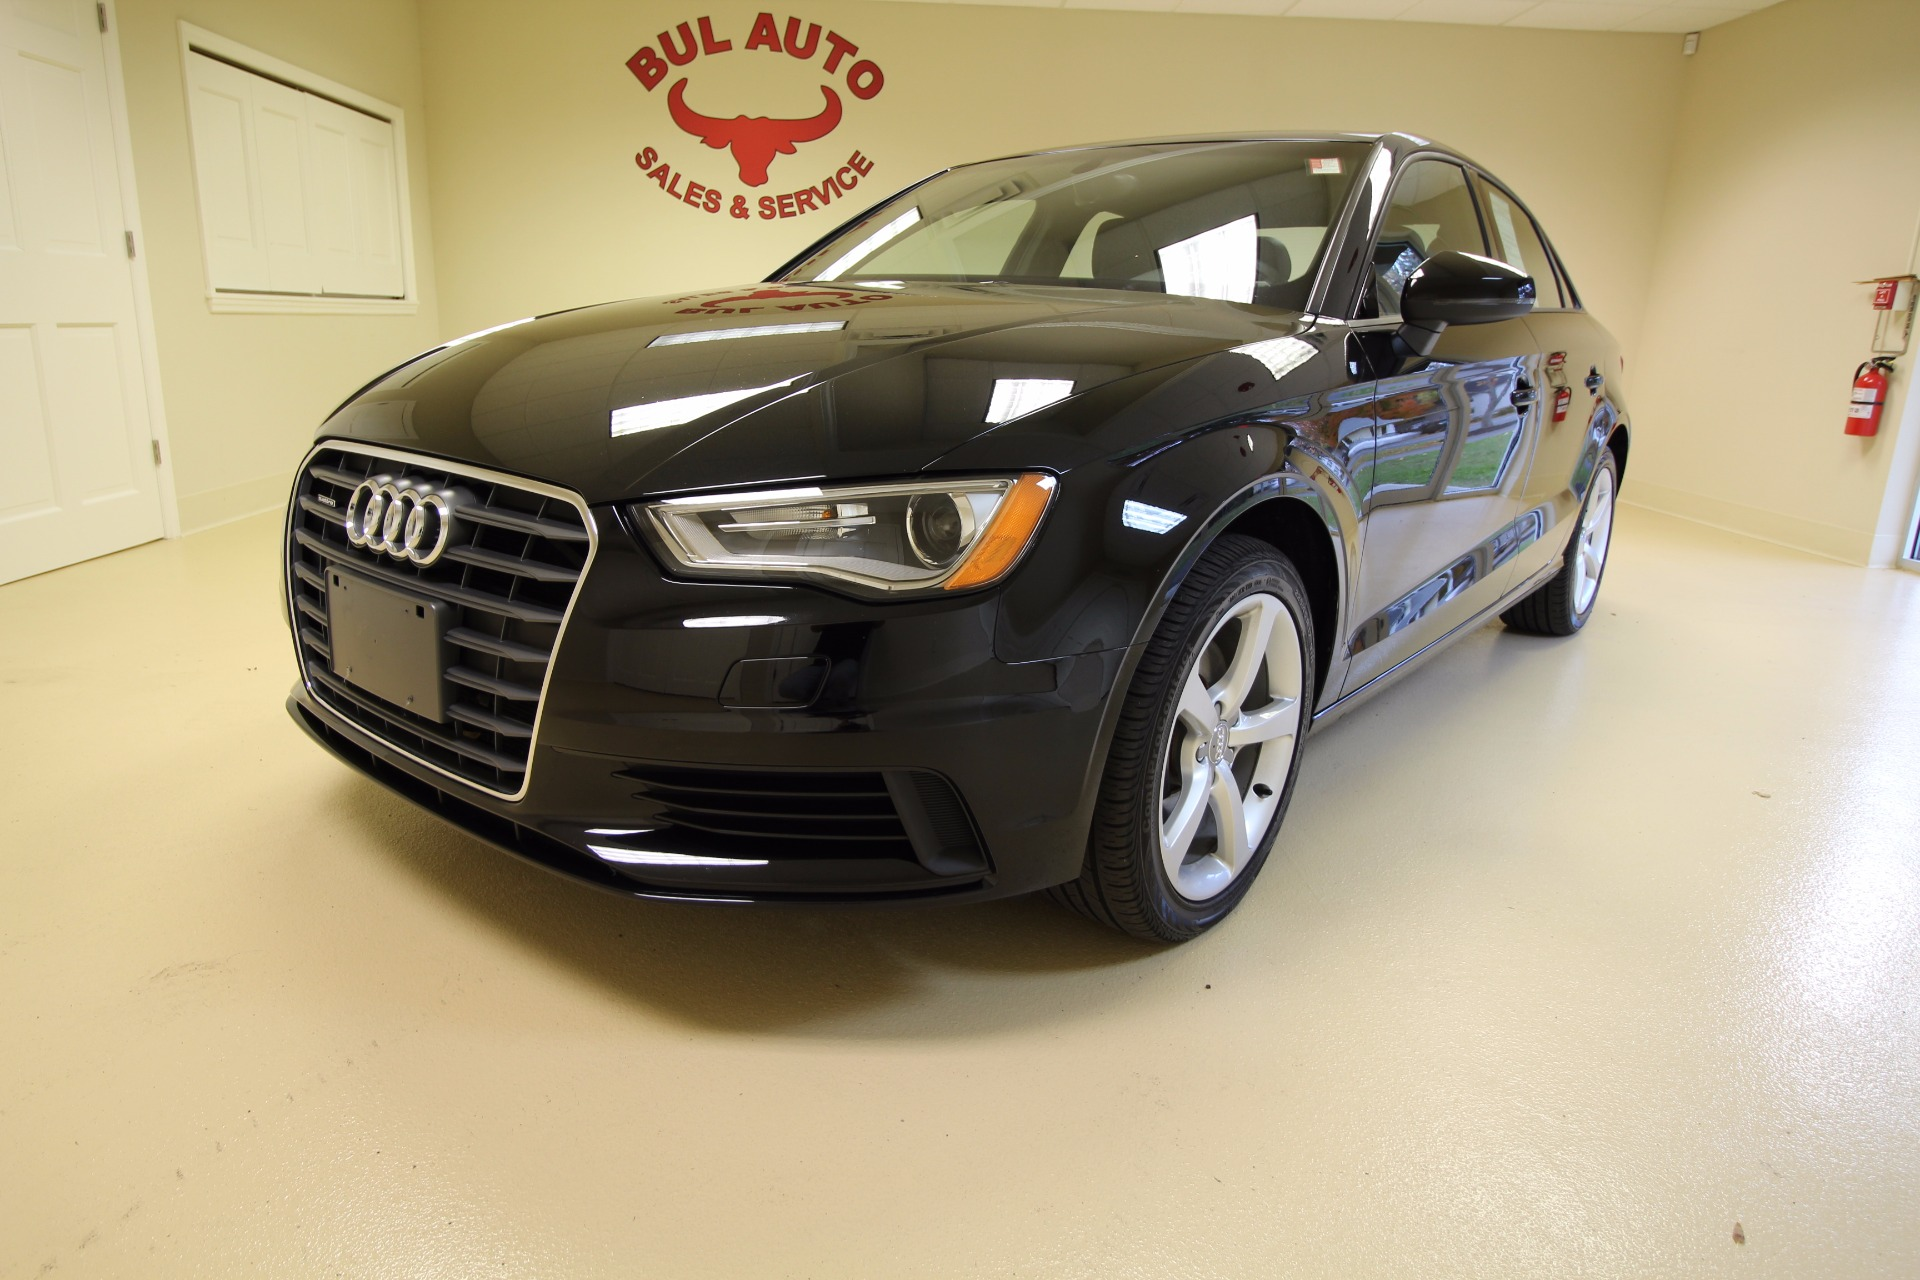 2015 audi a3 2 0t premium sedan quattro s tronic stock 16281 for sale near albany ny ny. Black Bedroom Furniture Sets. Home Design Ideas